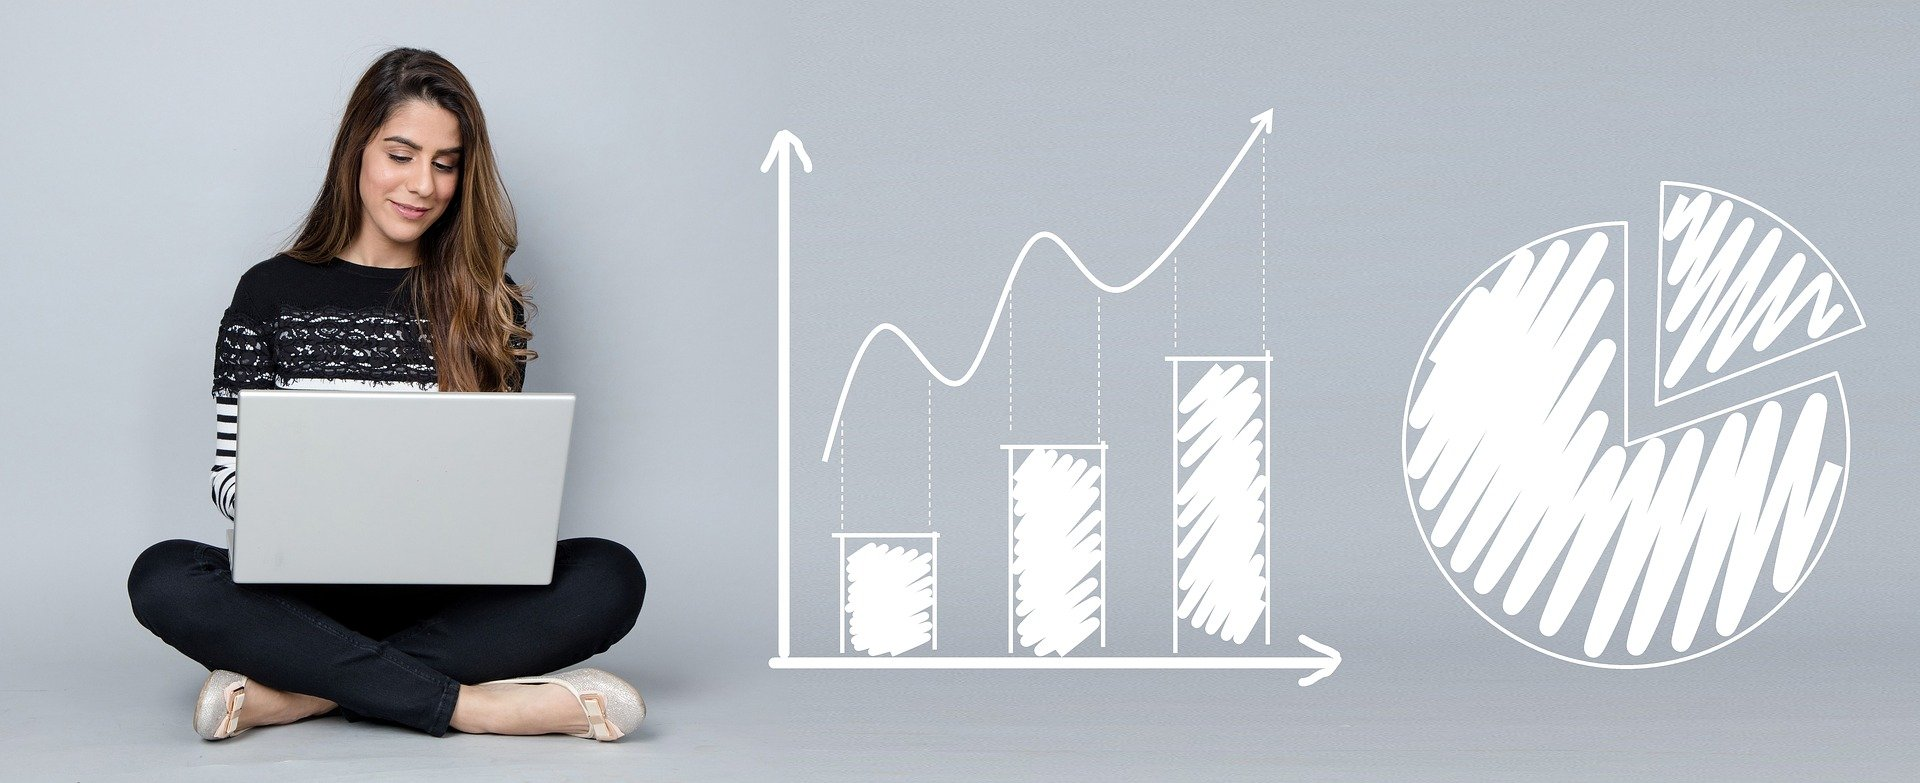 Business Growth Through Lead Generation